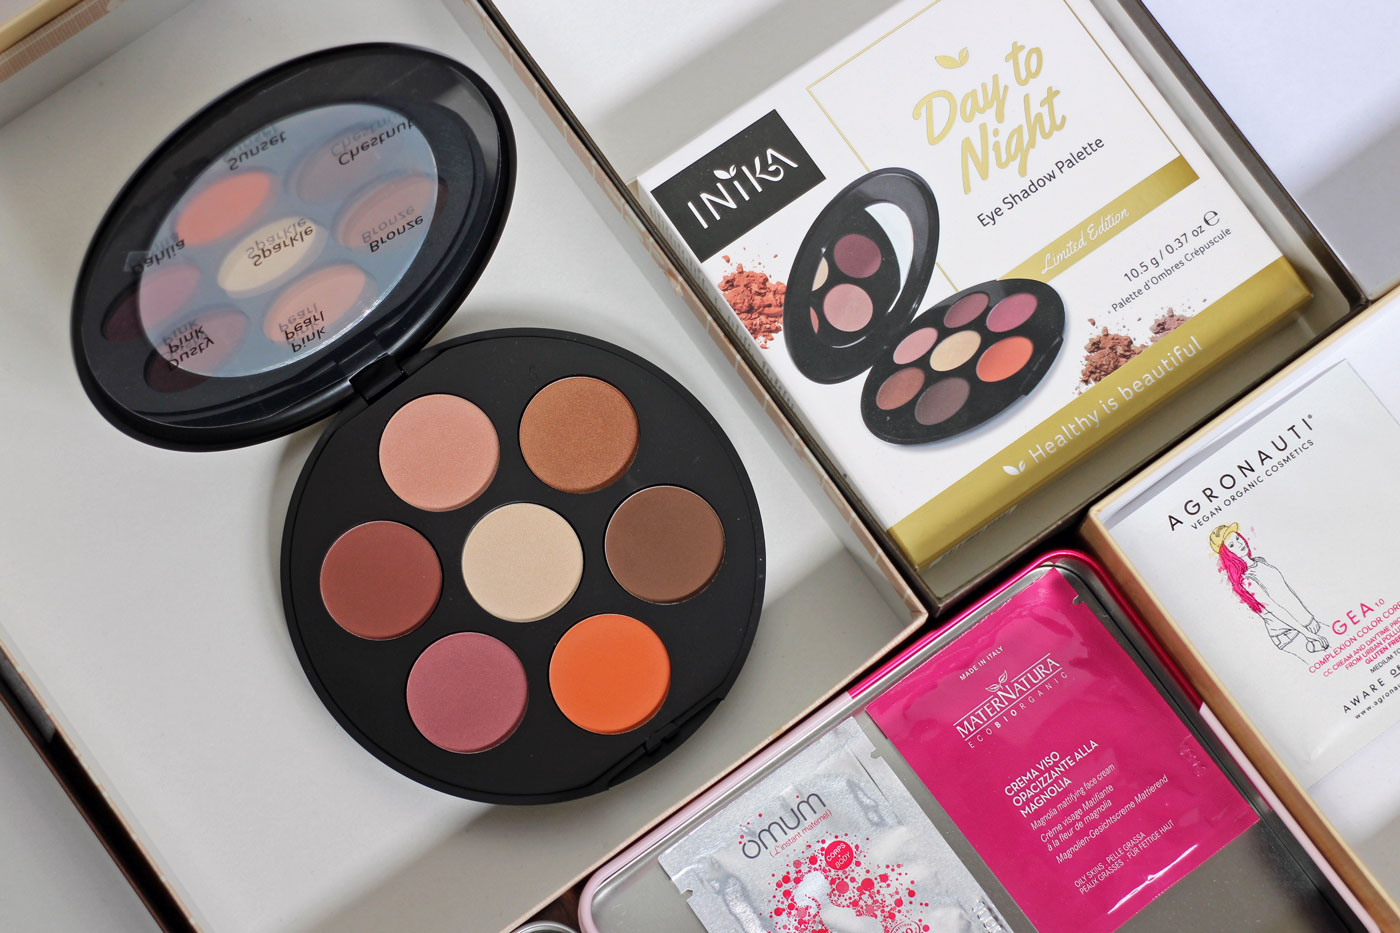 Inika Day to Night Palette